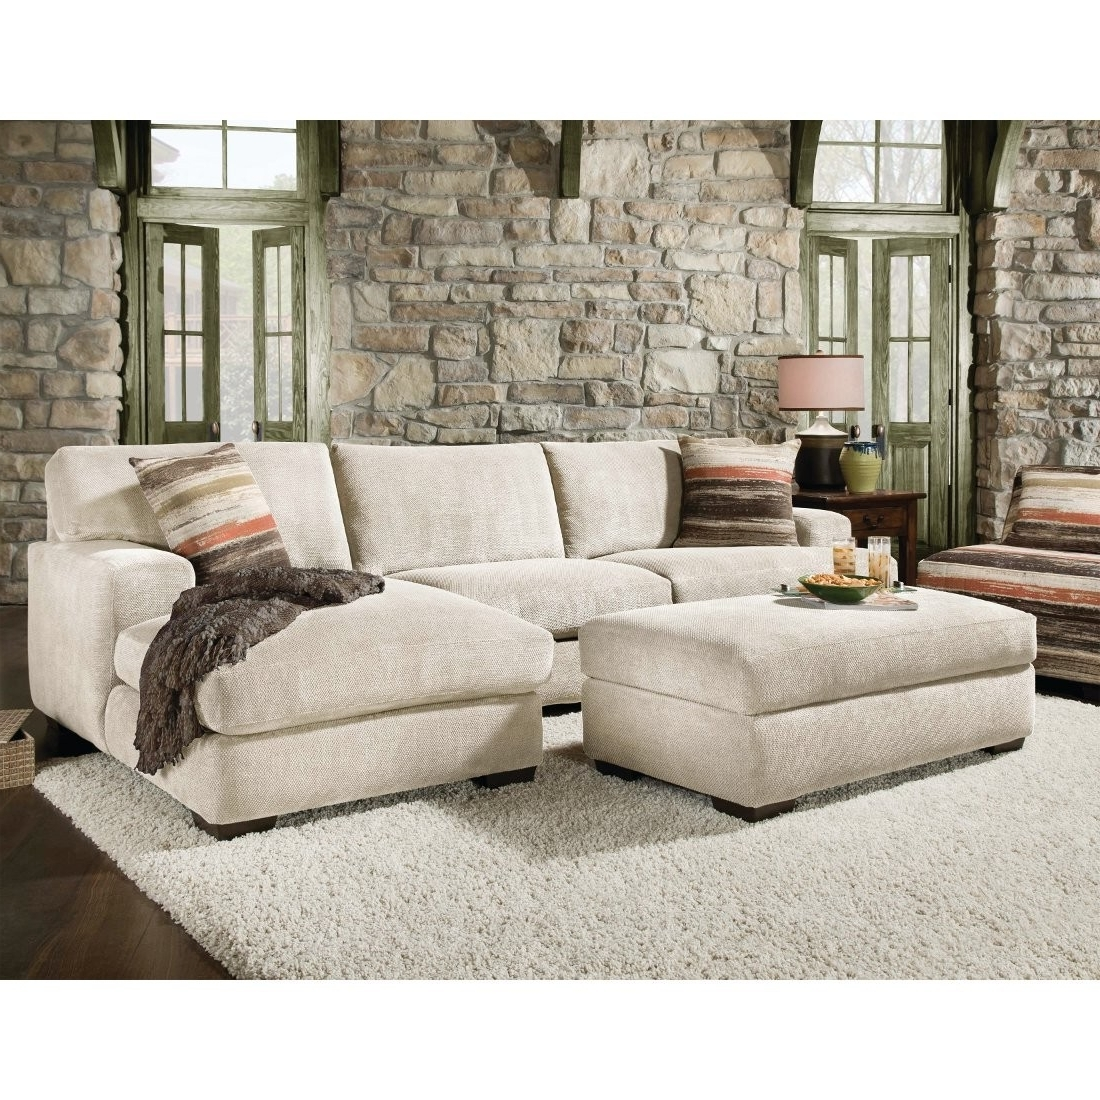 Favorite Sectional Sofa Design: Sectional Sofa With Chaise And Ottoman Intended For Sectional Sofas With Chaise Lounge And Ottoman (View 2 of 15)